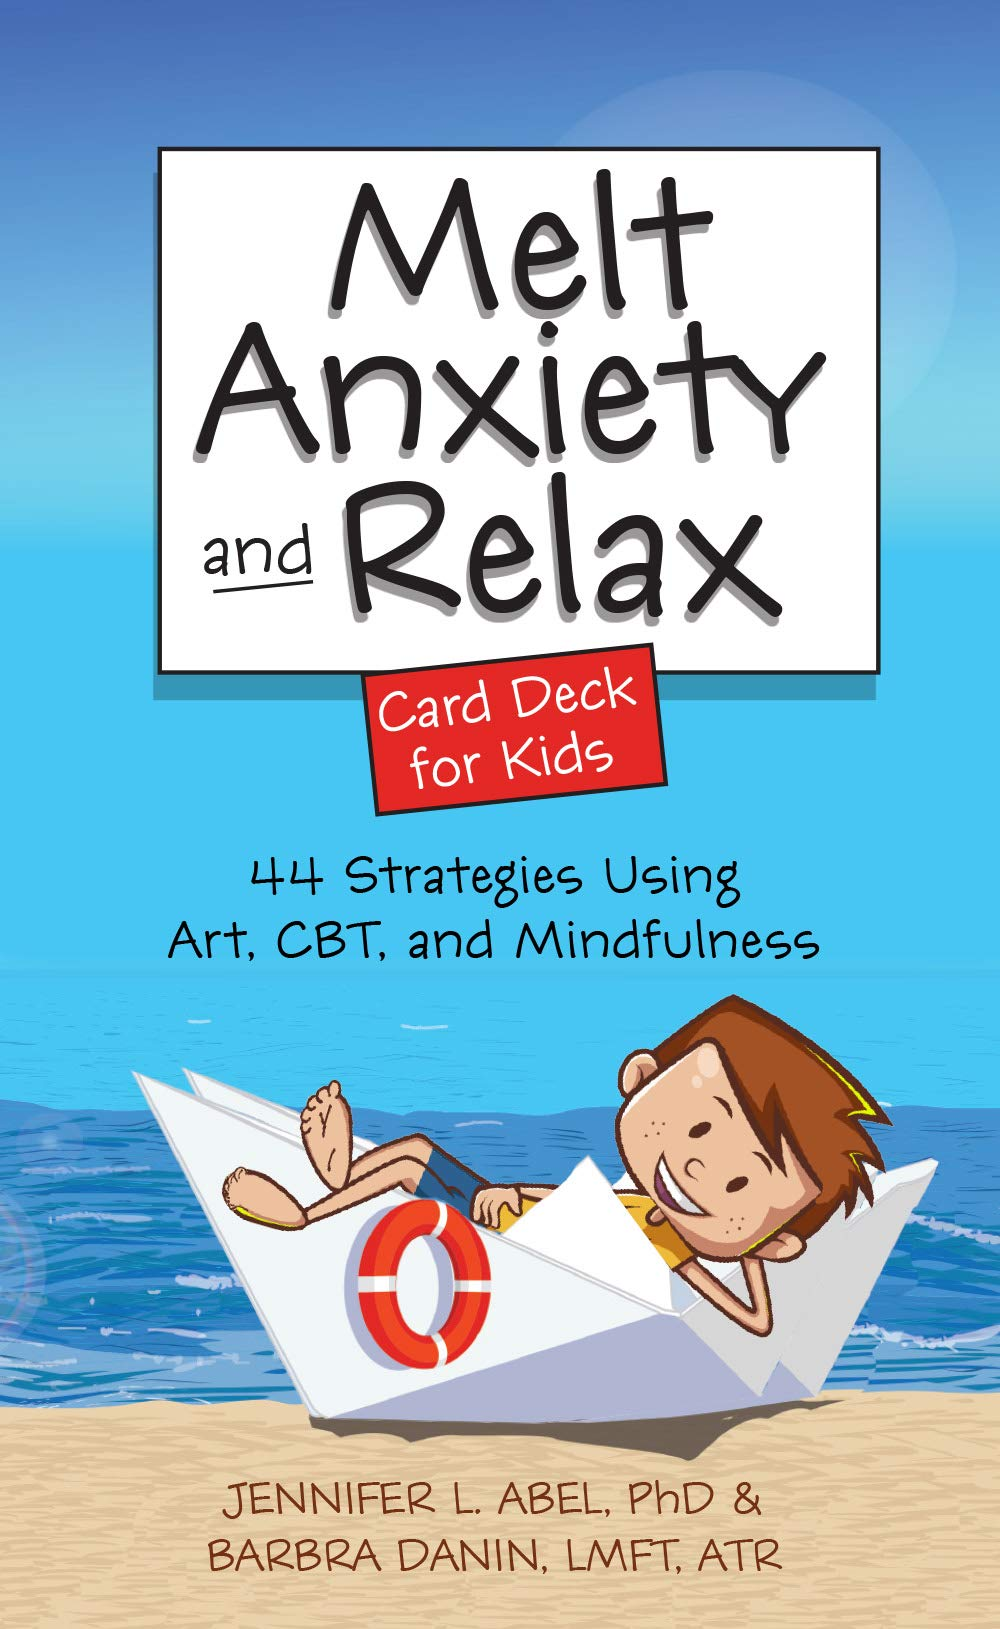 Download Melt Anxiety And Relax Card Deck For Kids: 44 Strategies Using Art, CBT And Mindfulness 